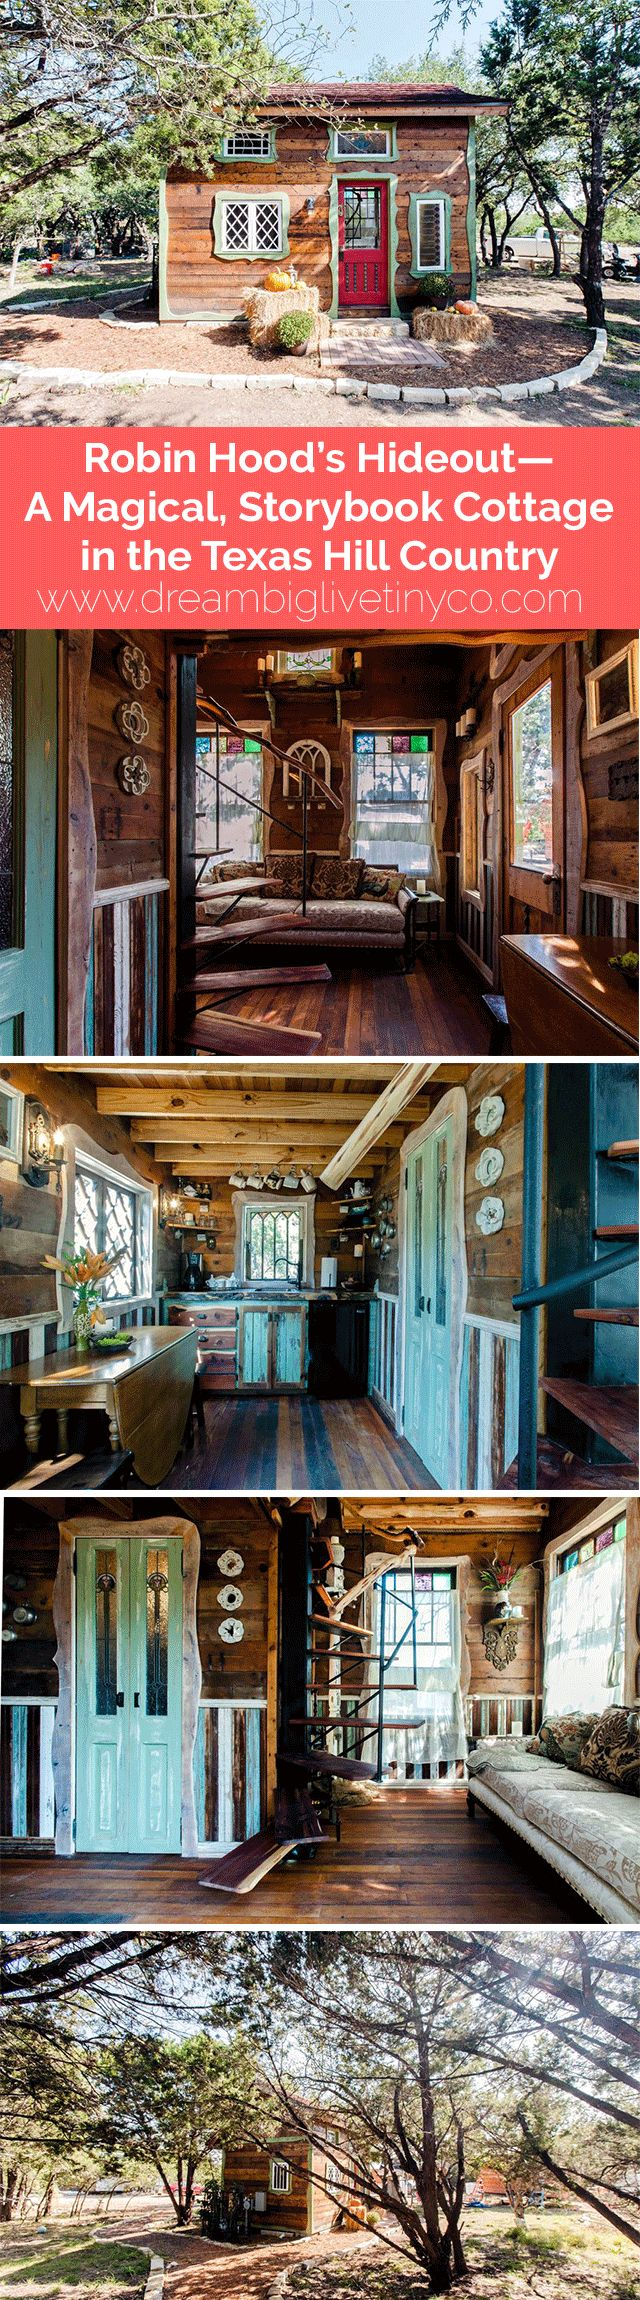 Robin Hood's Hideout--A Magical, Storybook Cottage in the Texas Hill Country